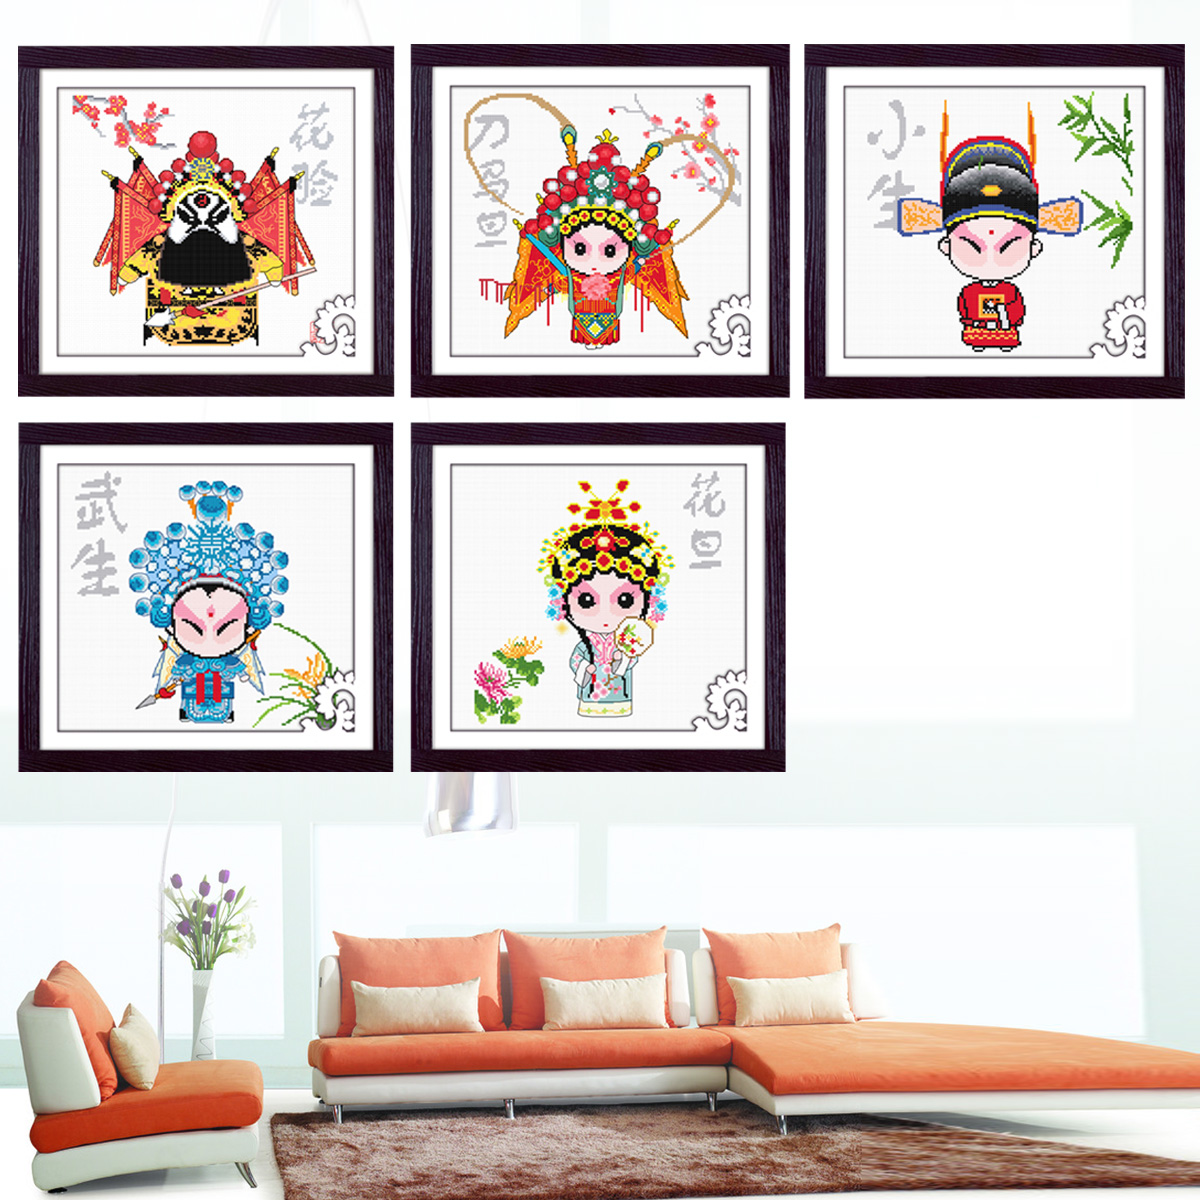 Precision printed cross stitch new living room large draw types of facial make-up in Beijing Opera series 5-piece kit email non-finished products